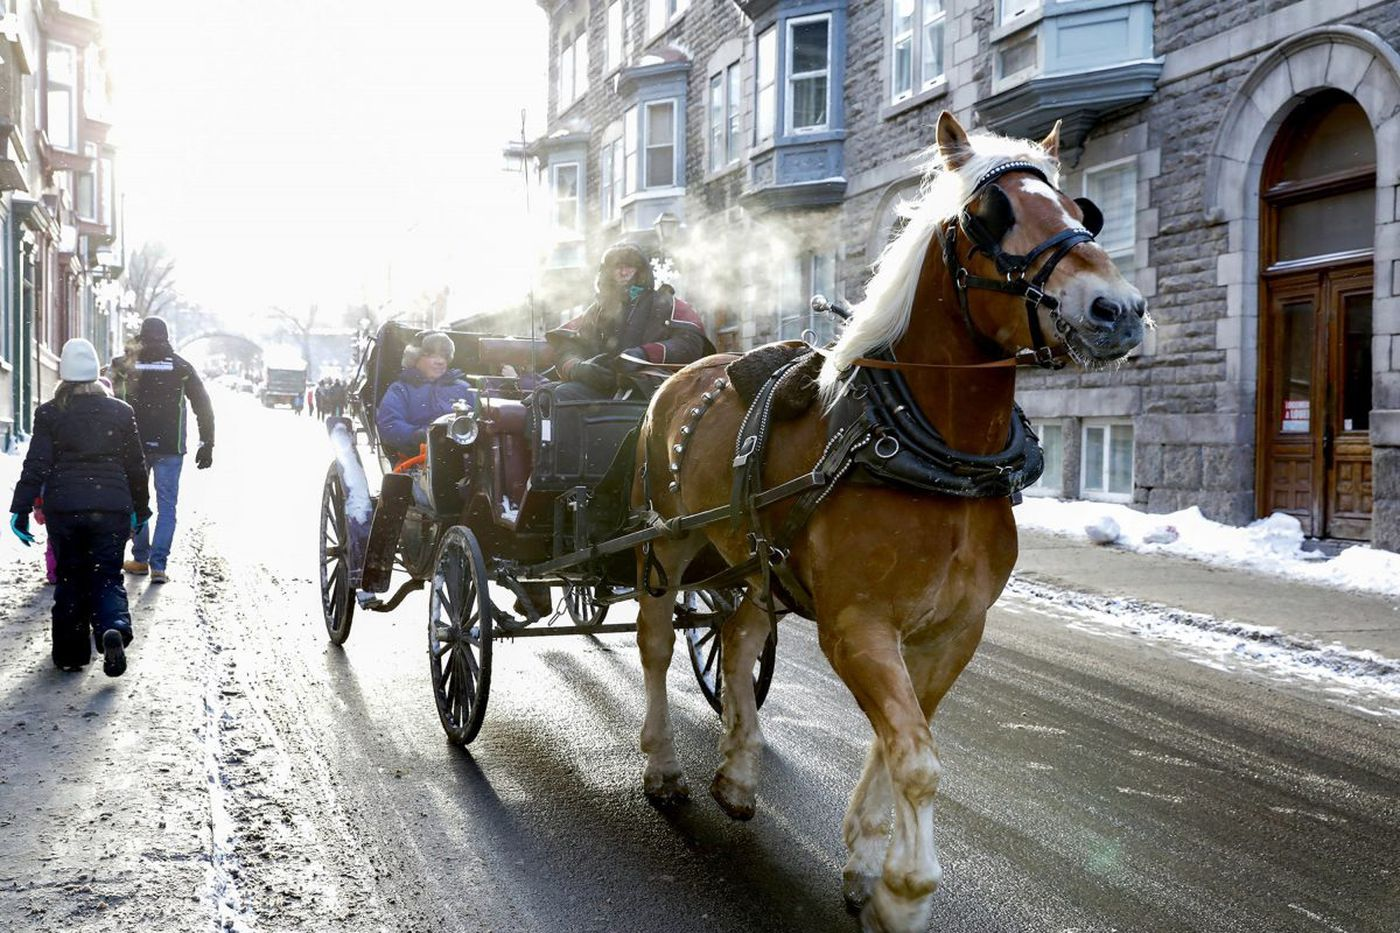 Quebec City in winter: A glorious wonderland